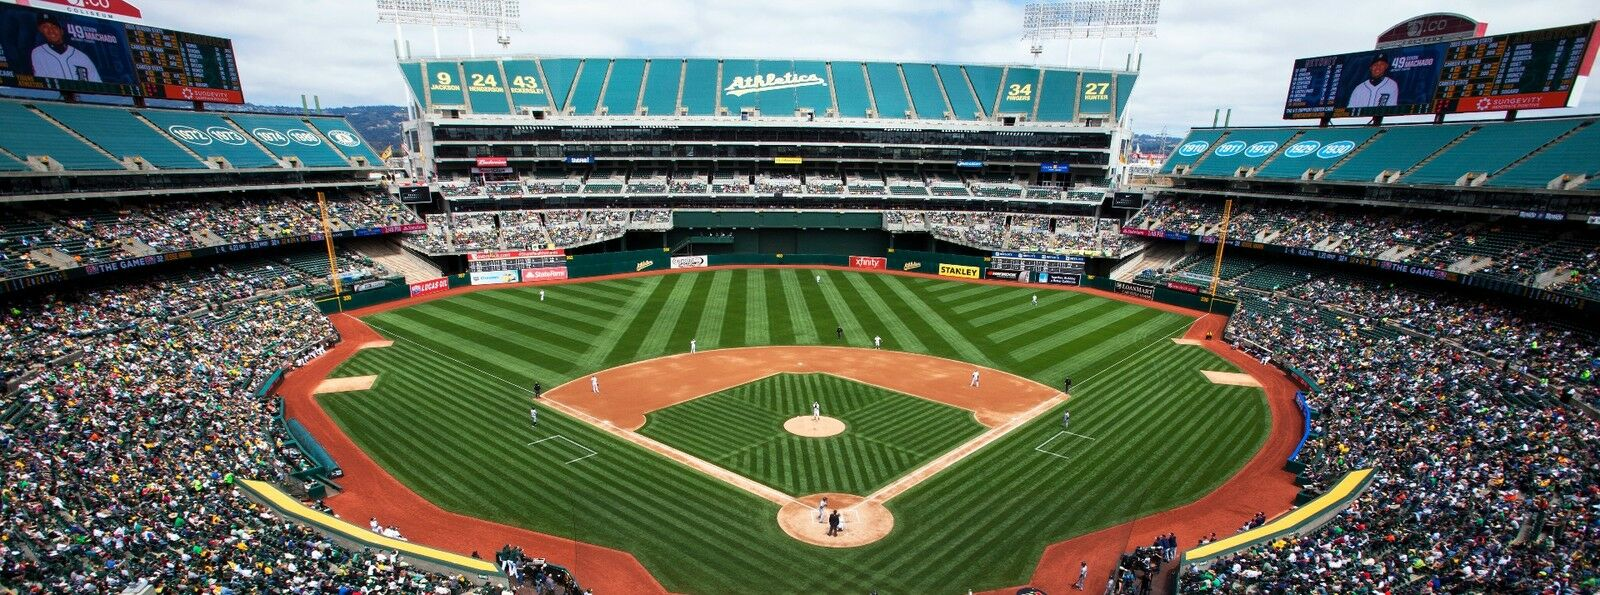 Minnesota Twins at Oakland Athletics Tickets (GEazy Bobblehead)